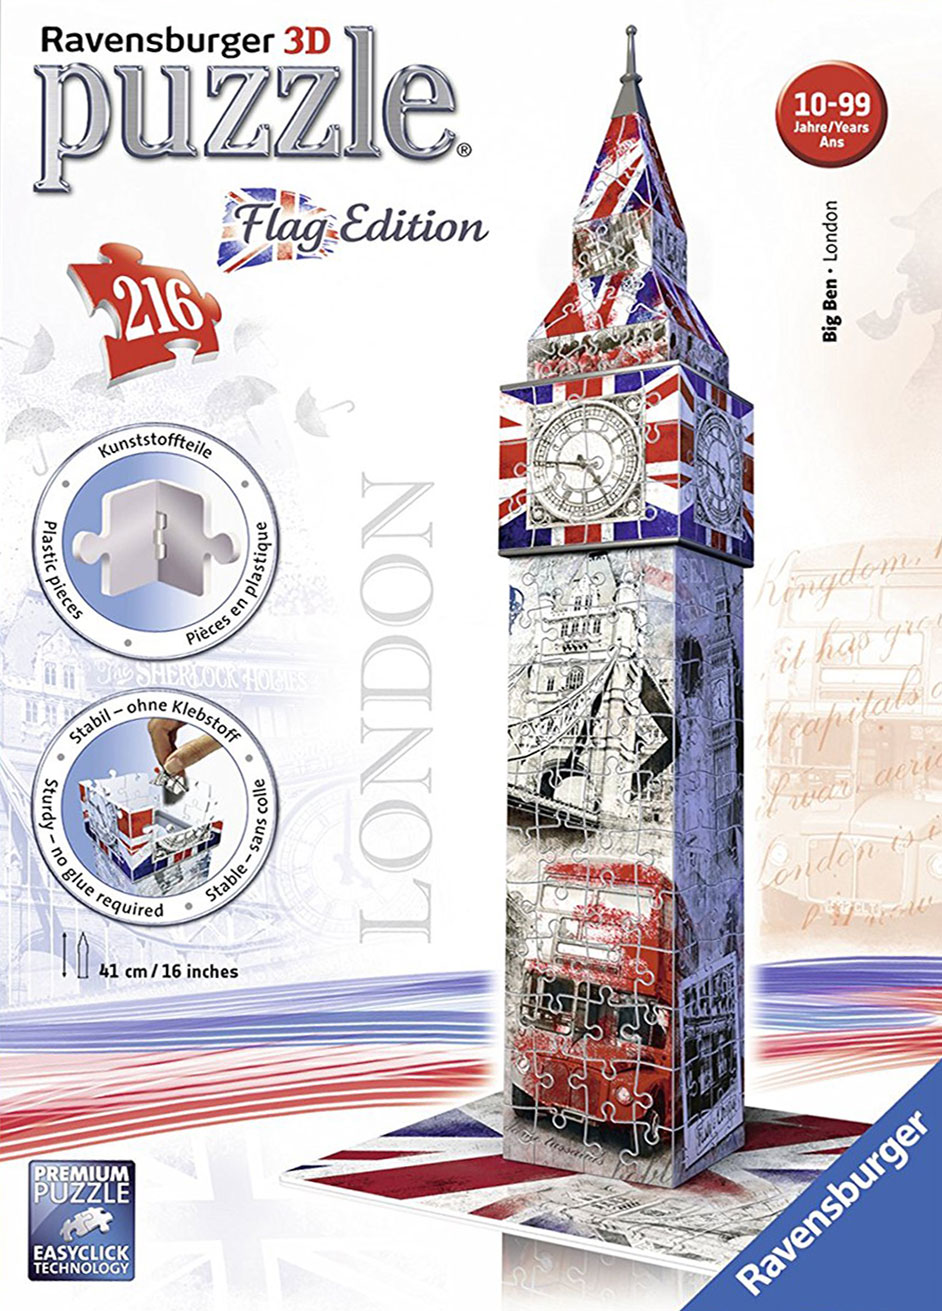 big ben flag edition 3d puzzle by ravensburger, 3diemnsional jigsaw puzzle, 216 pieces, 16inches big-ben-flag-edition